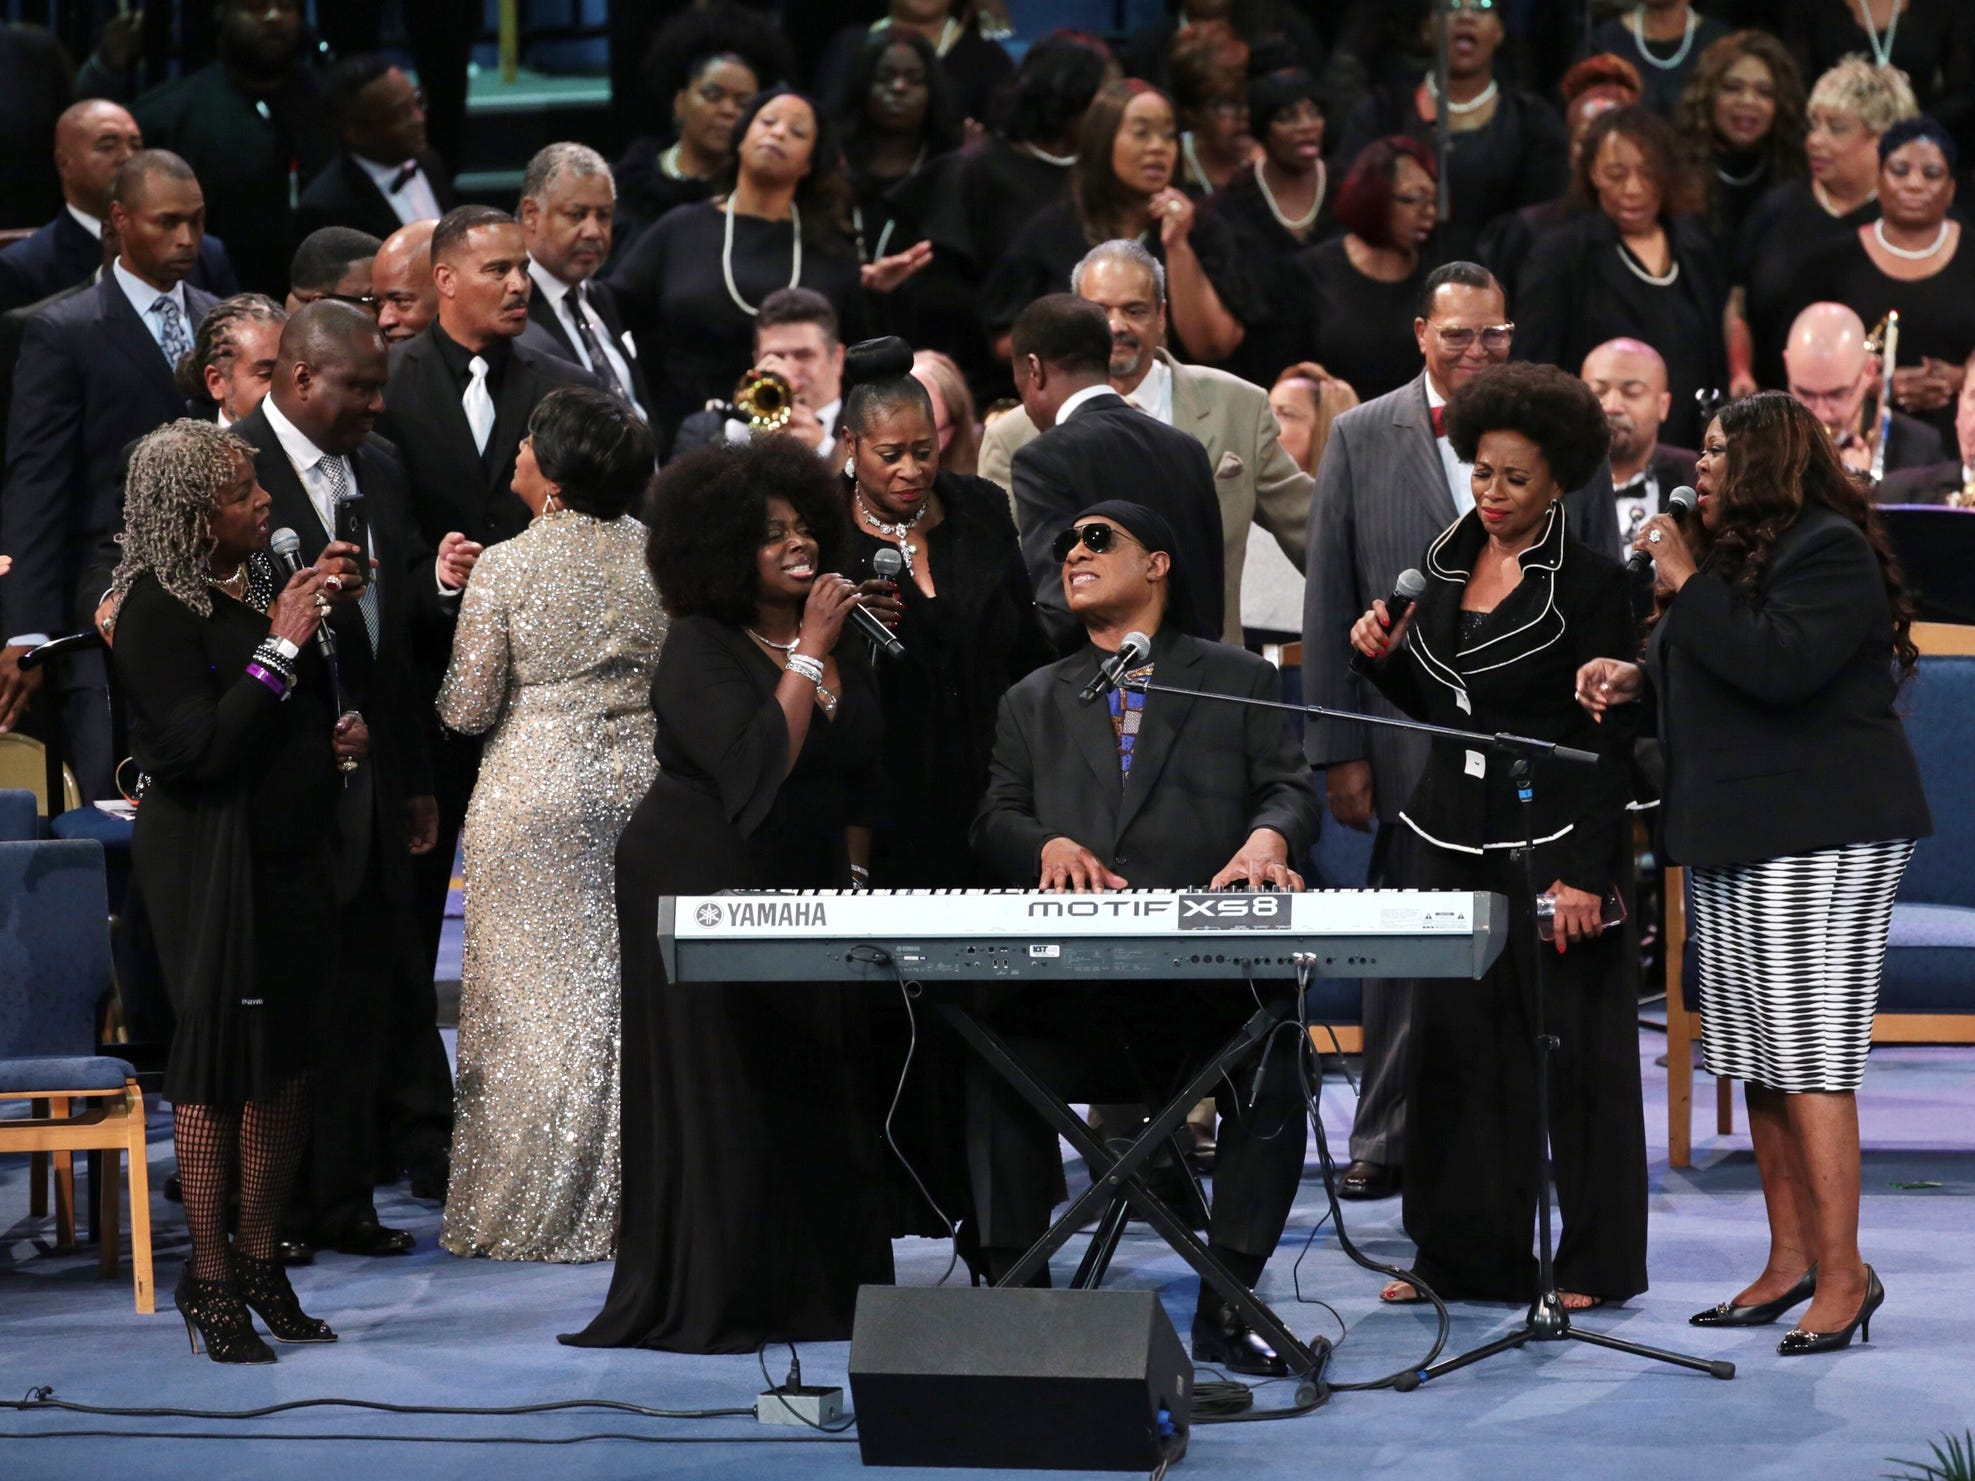 Stevie  Wonder  joined  by  national  artists performs at the end of the funeral for the late Aretha Franklin at Greater Grace Temple in Detroit on Friday, August 31, 2018.